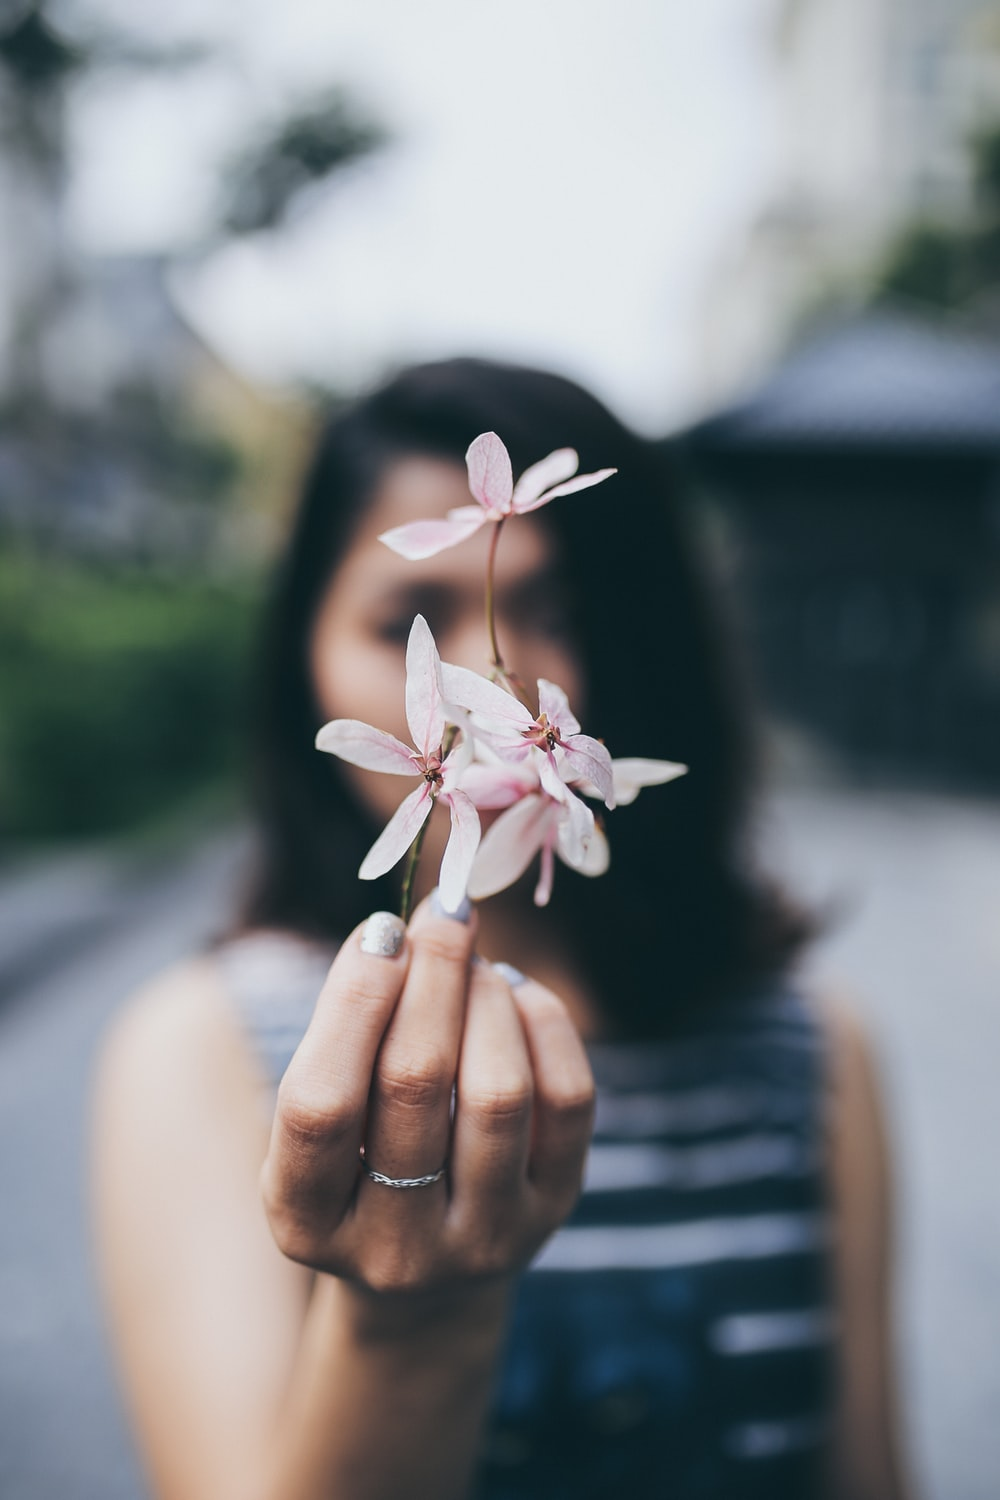 Woman With Delicate White Flowers Photo By Hai Phung Pminhai On